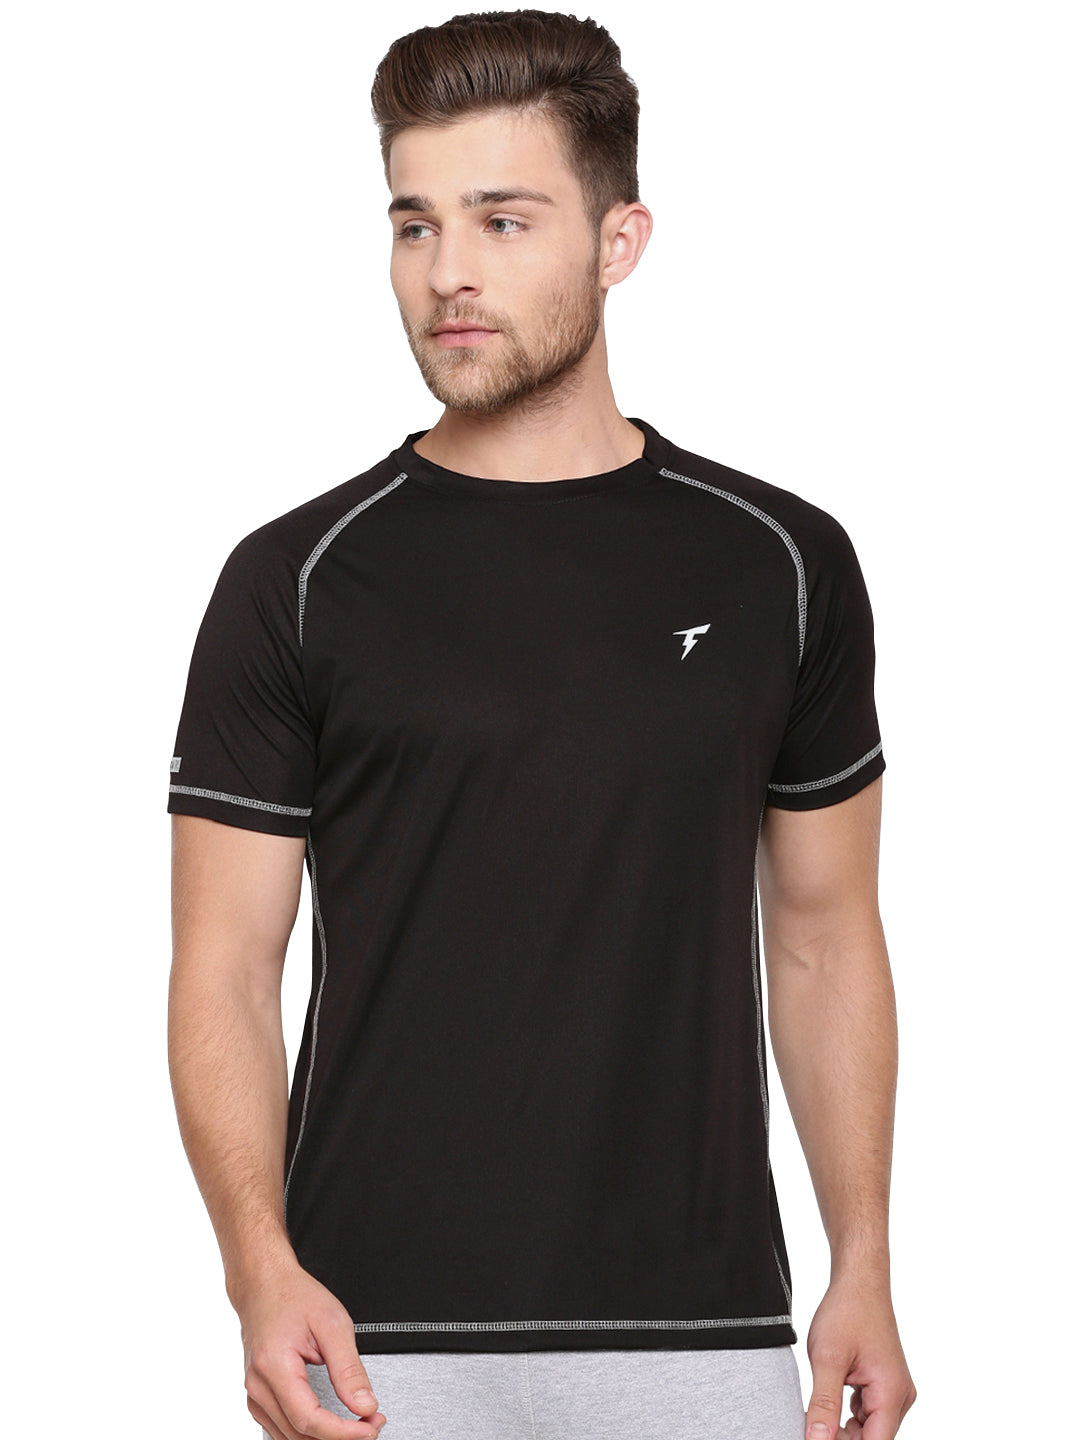 Raglan Sleeve Athletic Tee - Black